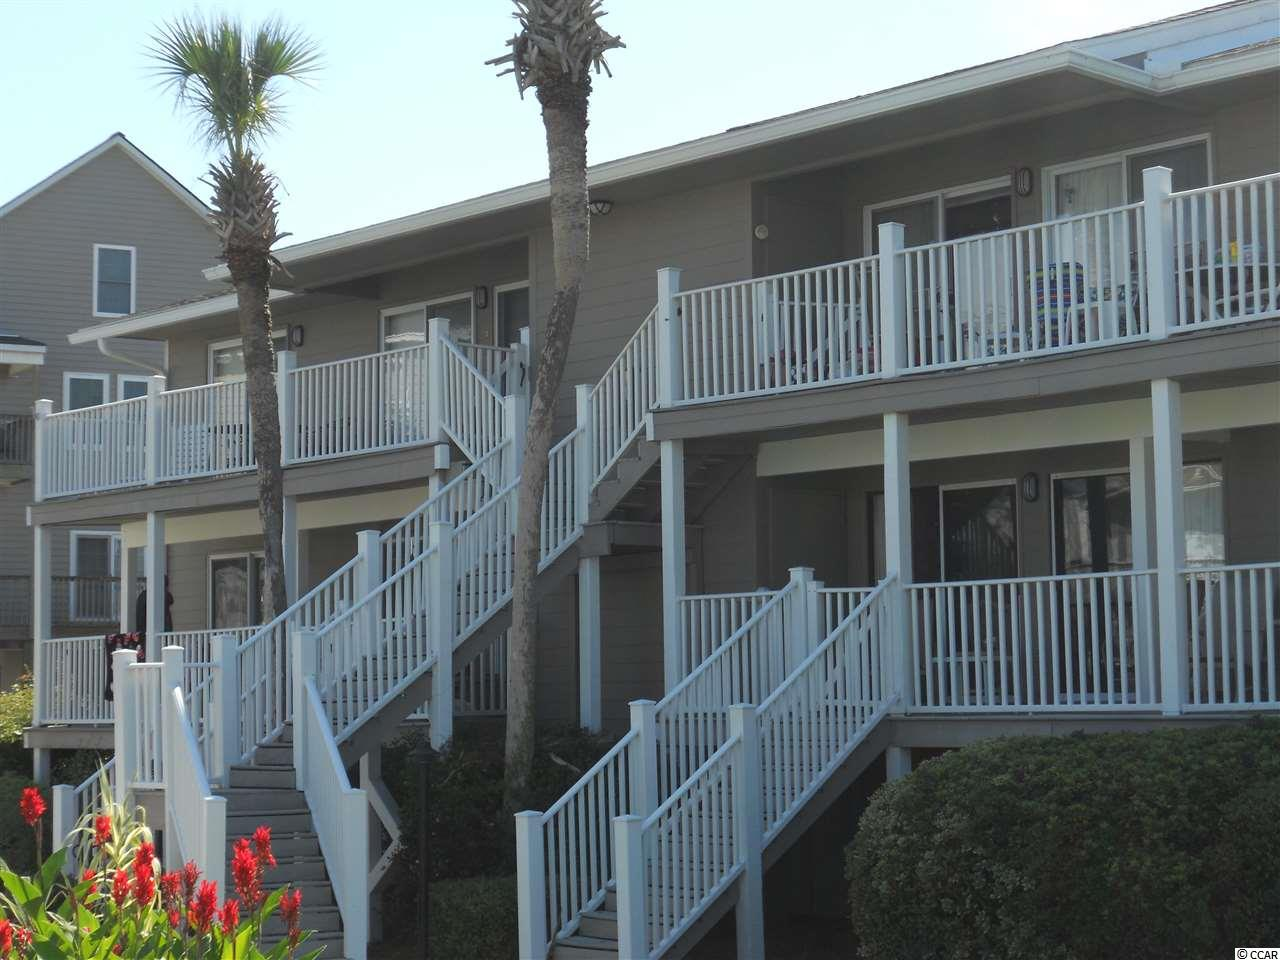 Condo / Townhome / Villa for Sale at 111 5th Ave N 111 5th Ave N Surfside Beach, South Carolina 29575 United States